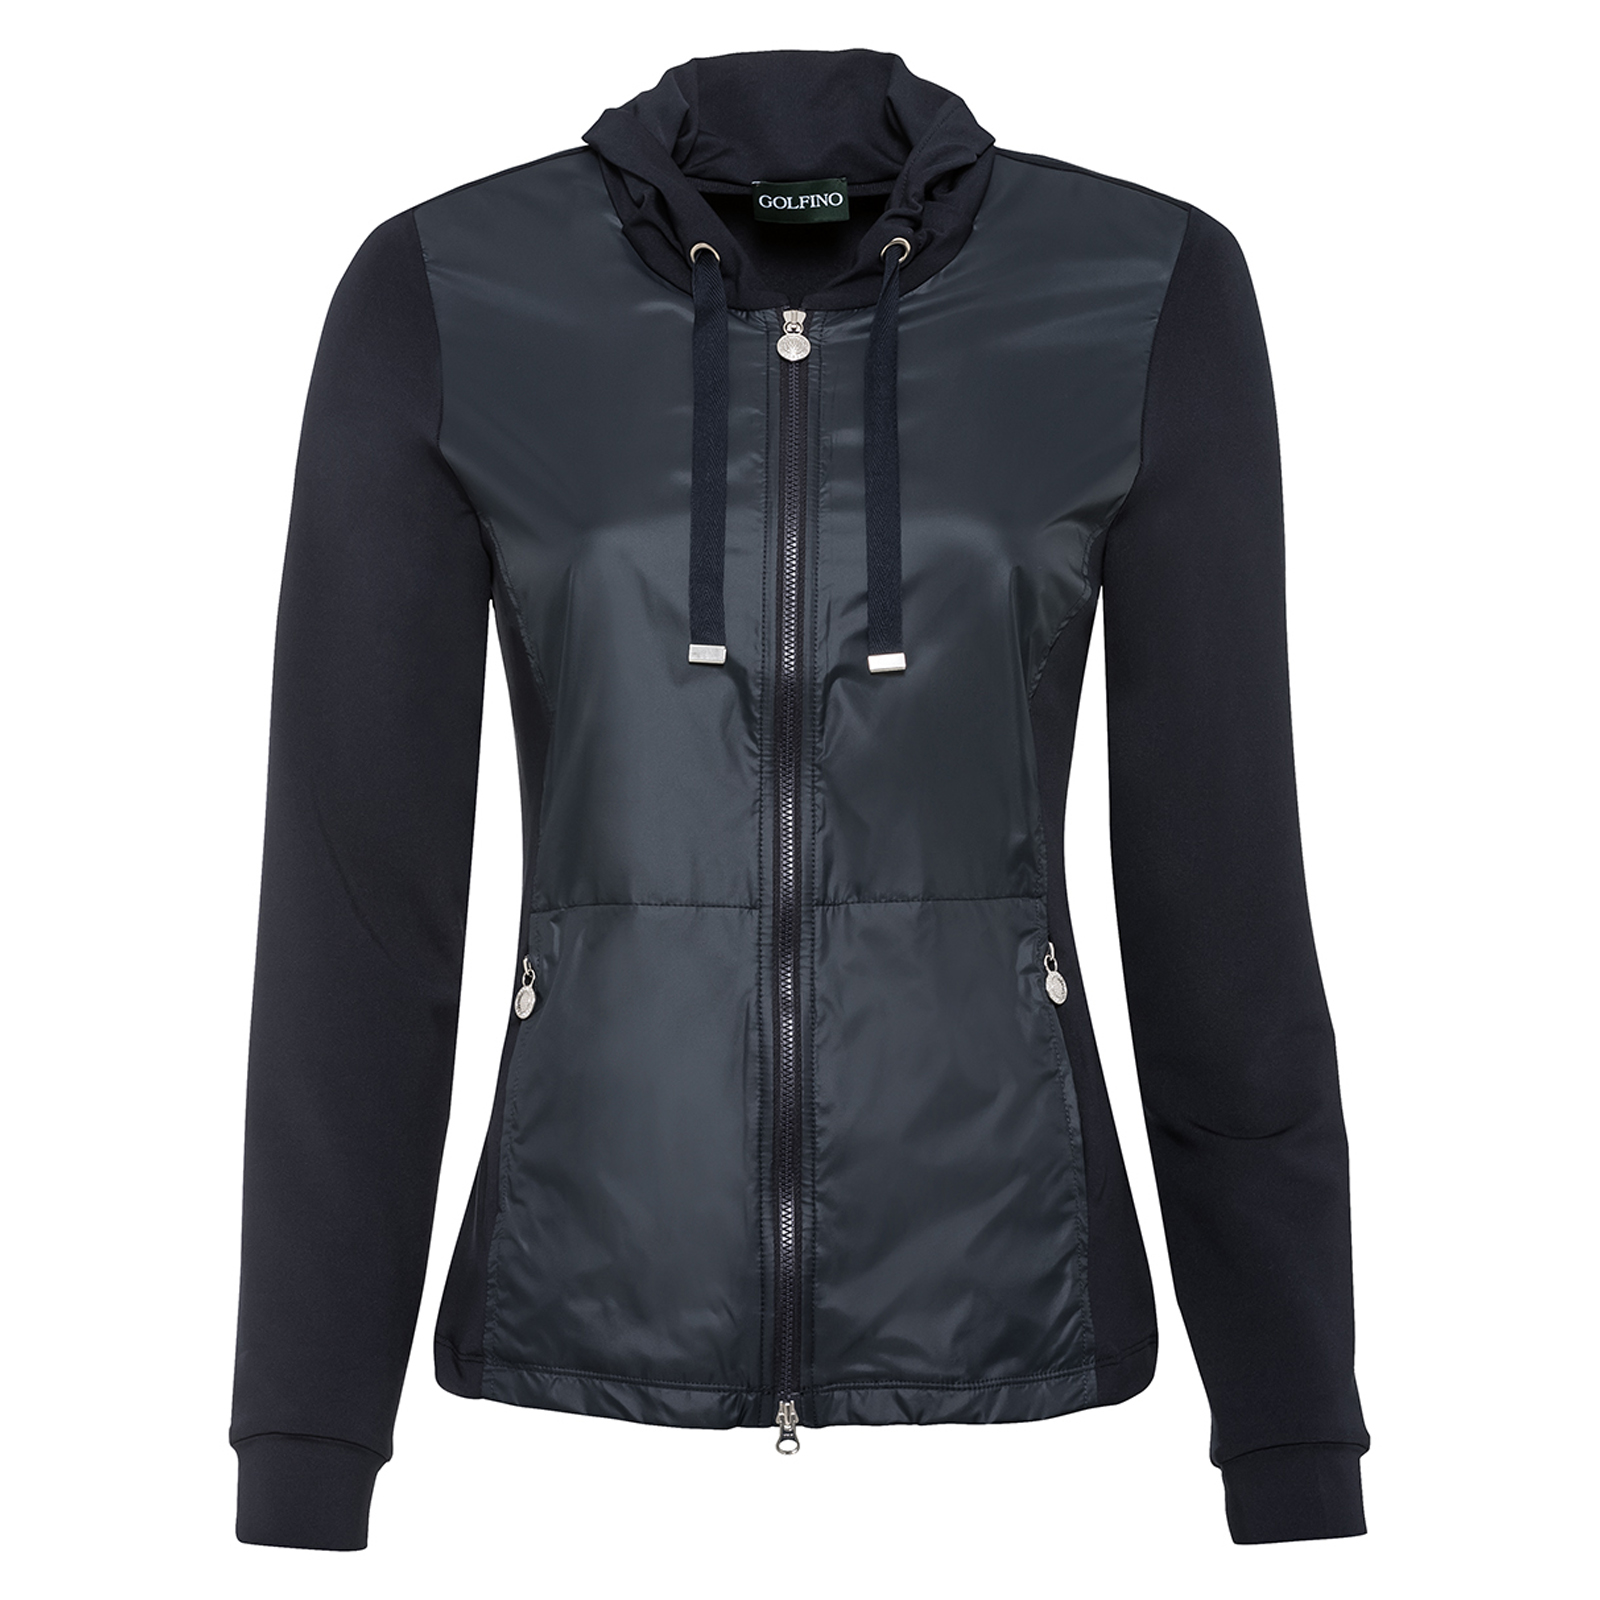 Damen Golfjacke mit Extra Stretch Komfort in Regular Fit